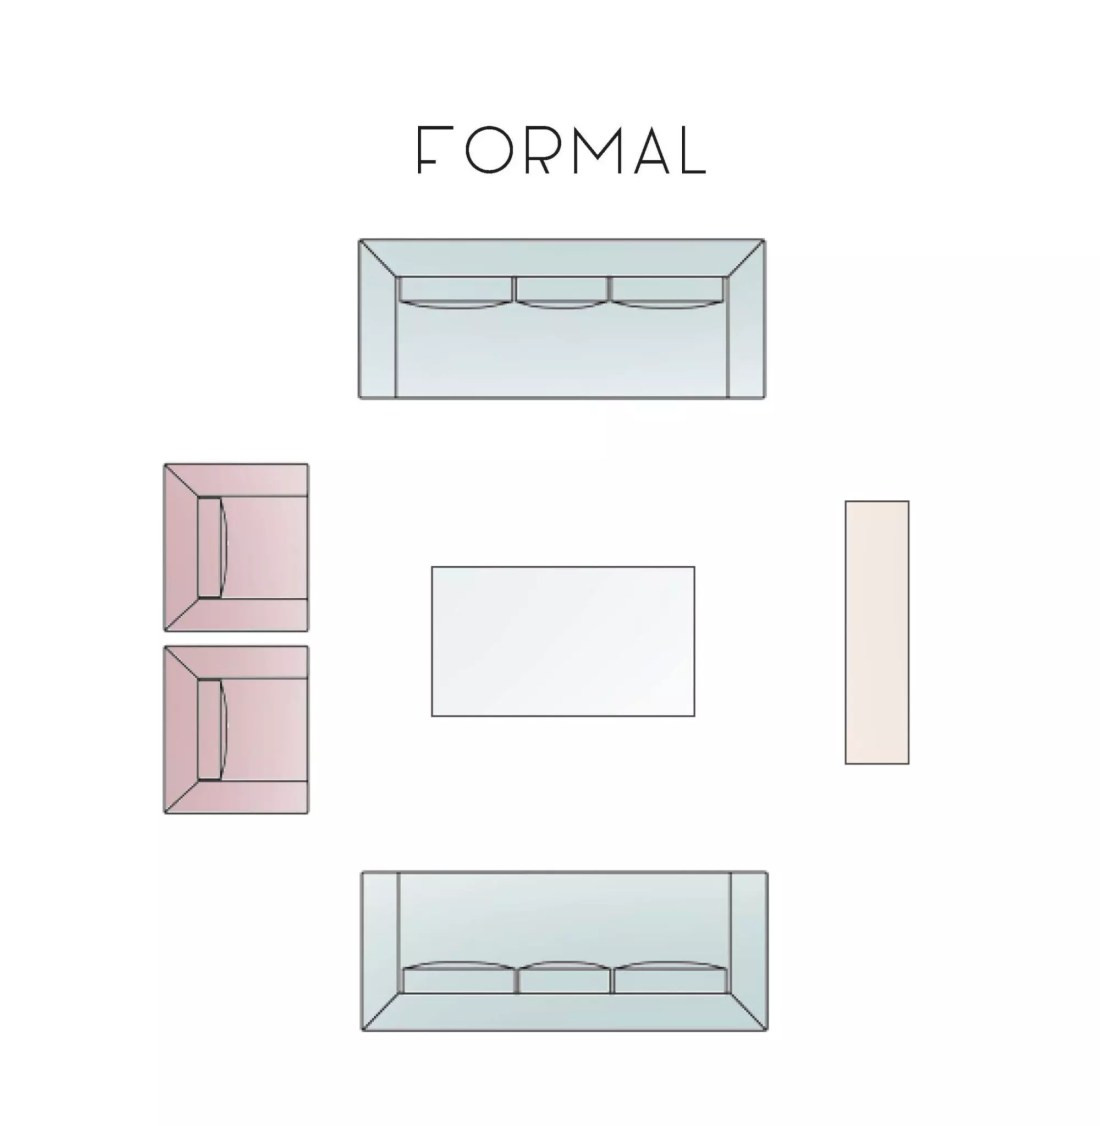 Space Planning 101: The Living Room - Catherine French Design